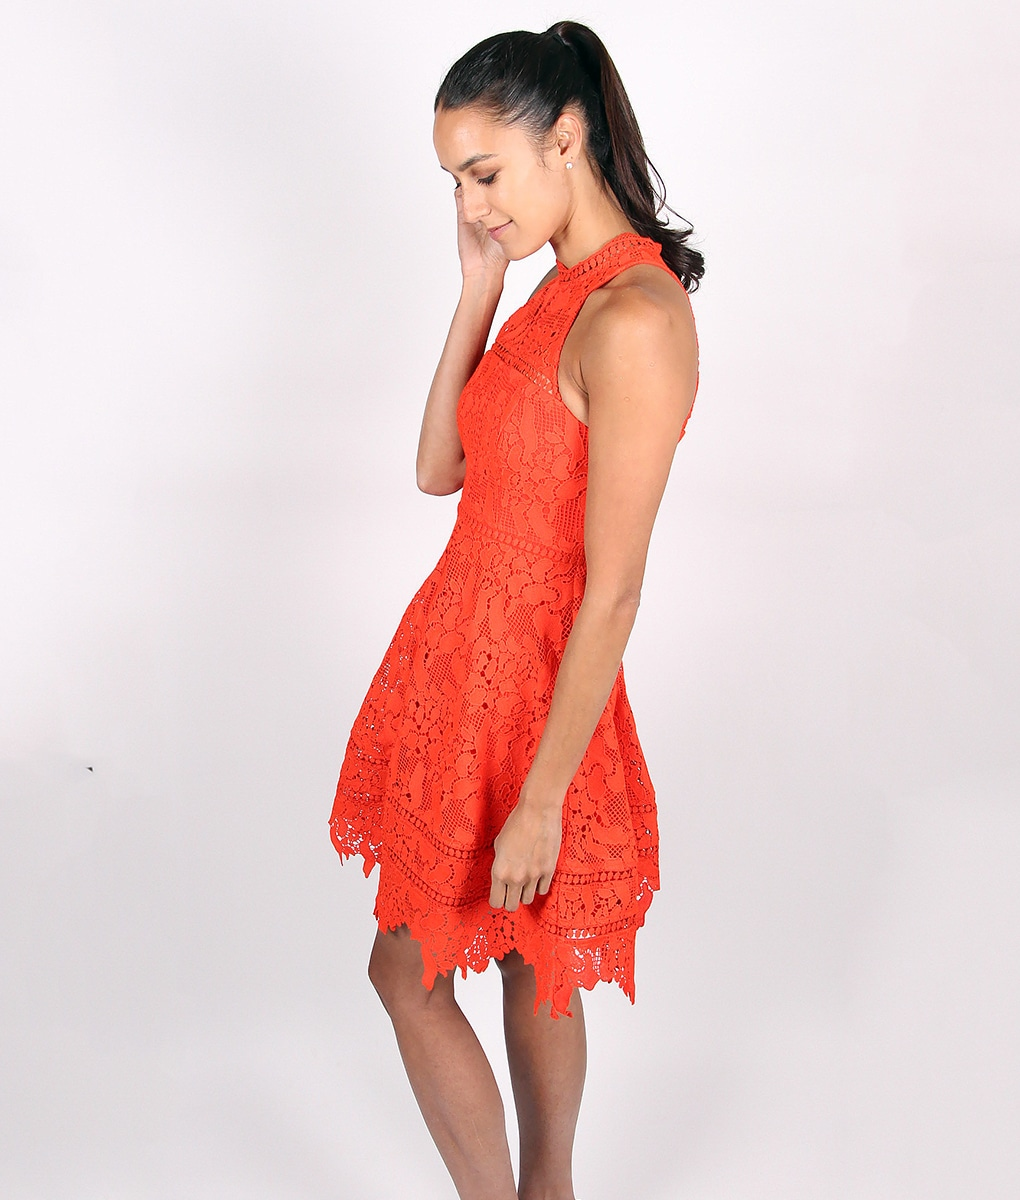 Alila-Red-Lace-Crochet-Dress-by-Lumier-by-Bariano-side